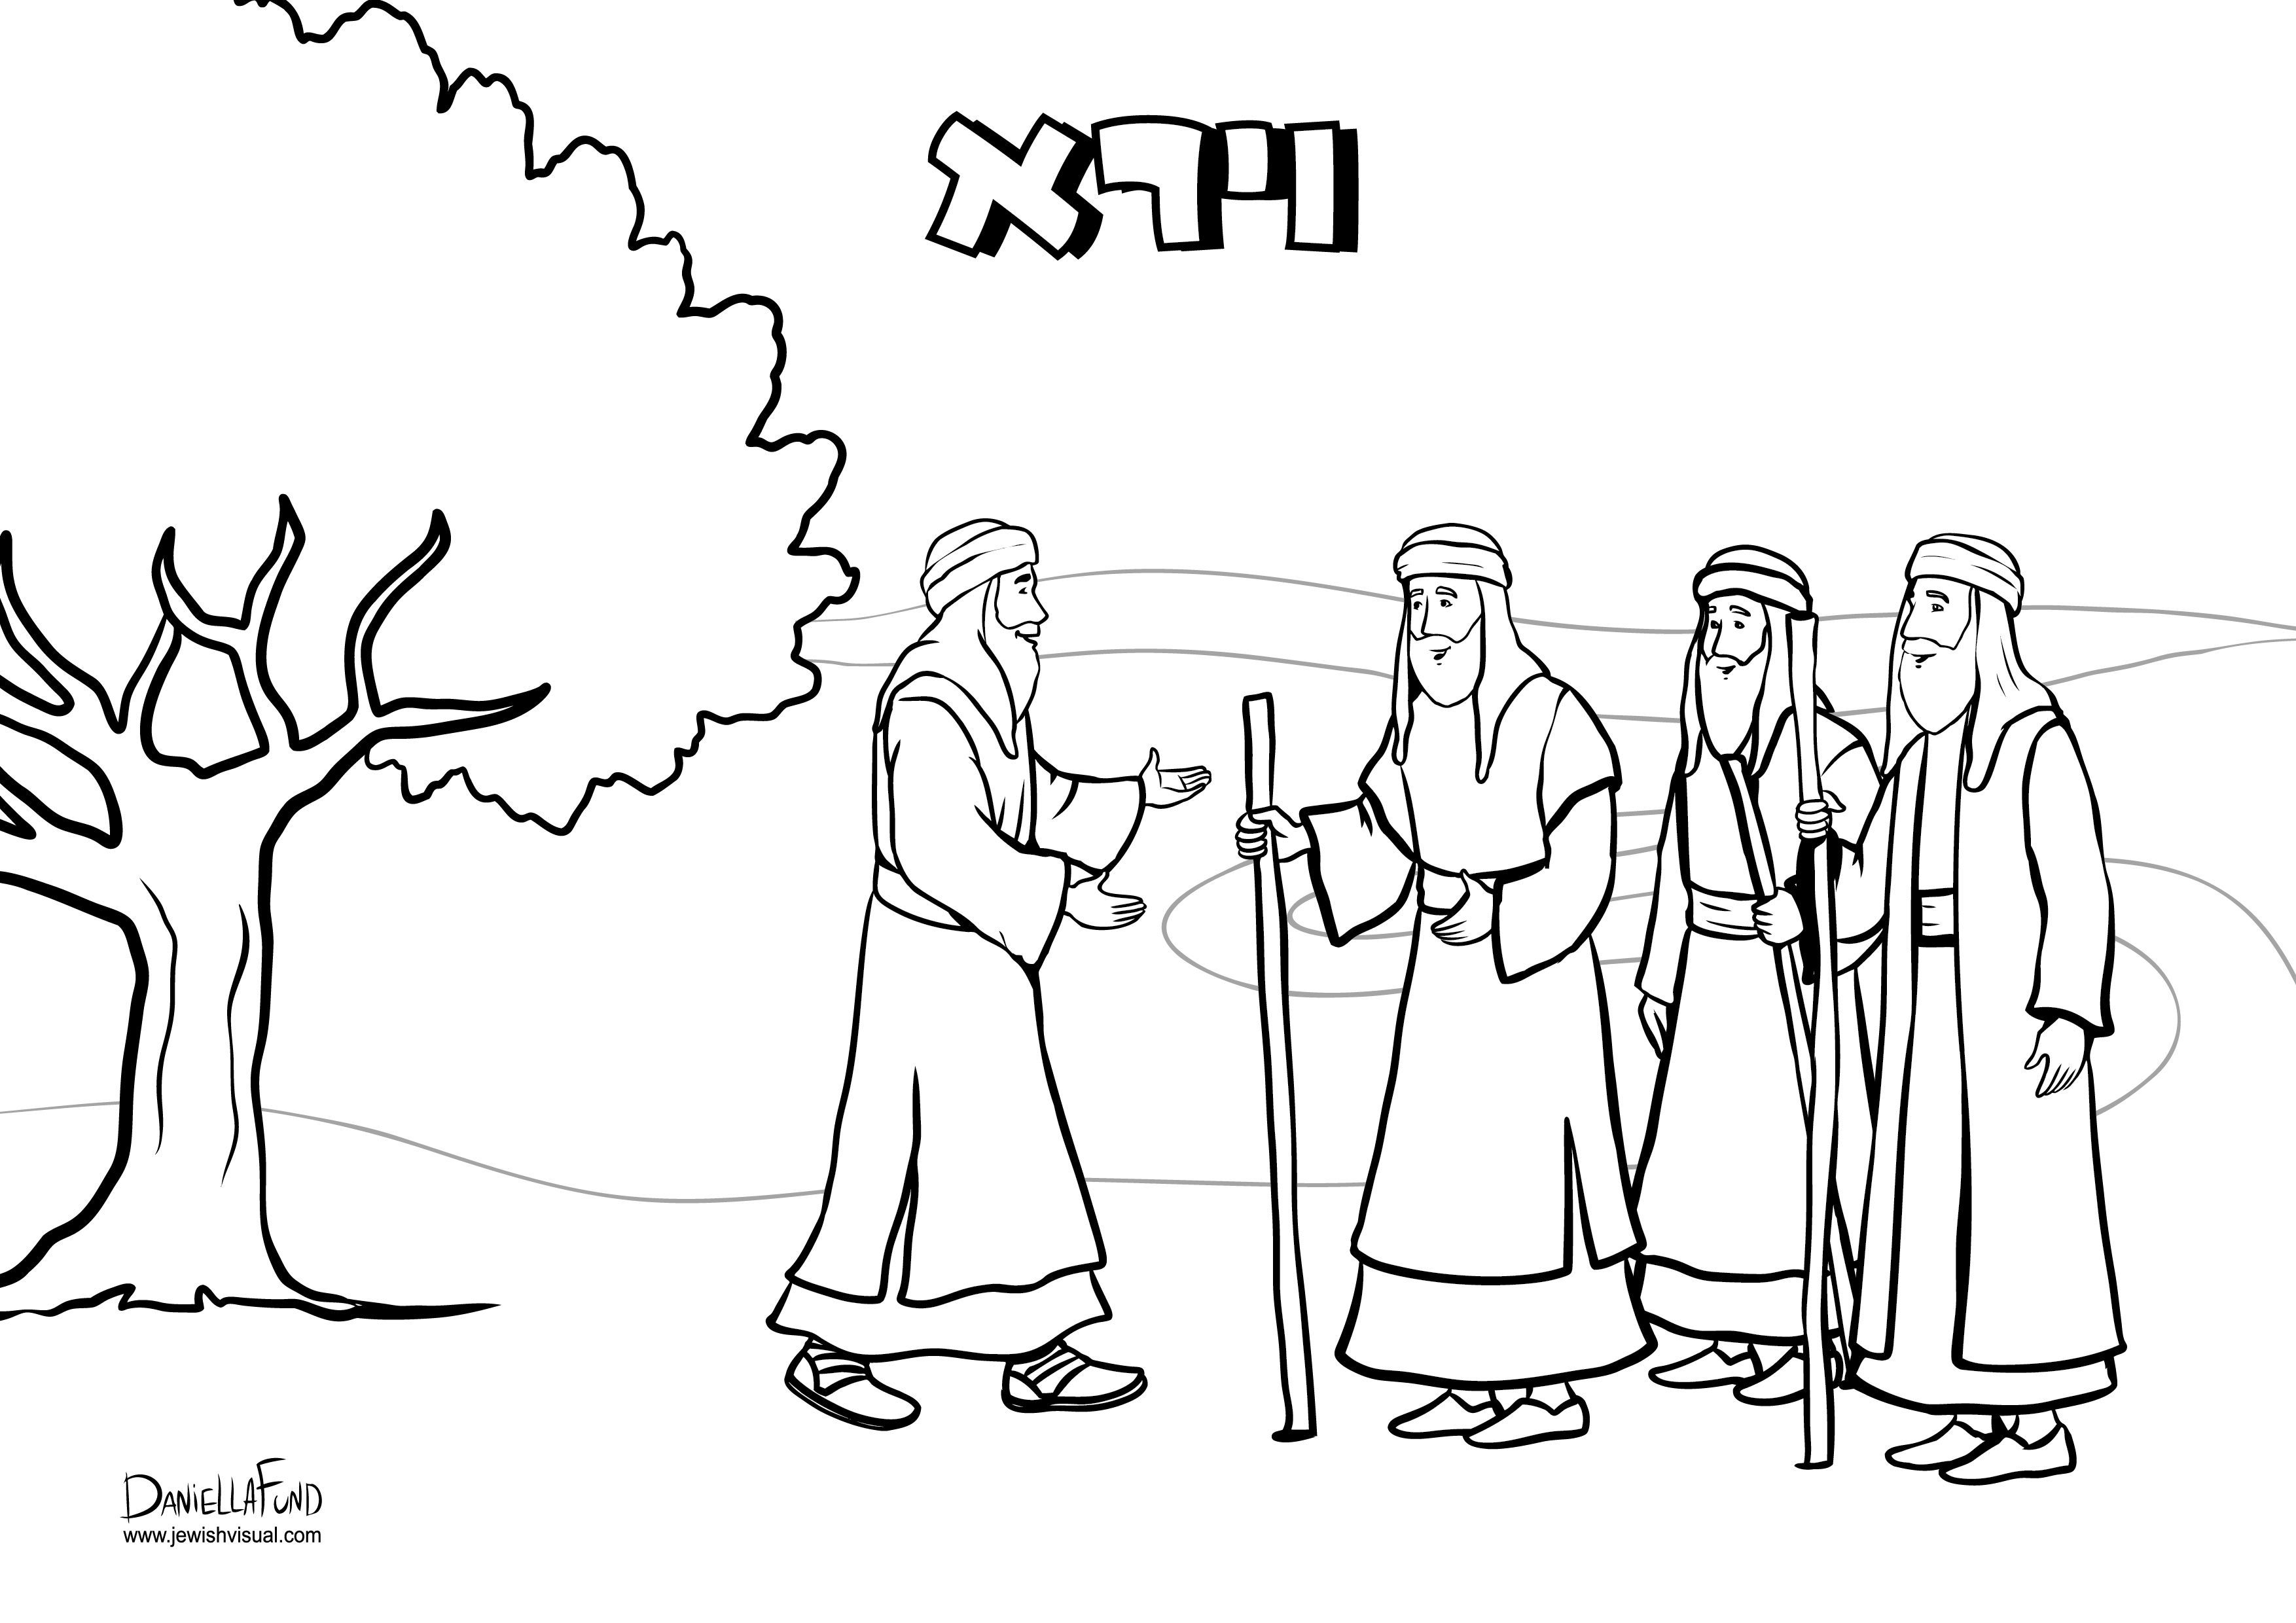 Parshat Chayei Sarah Coloring Pages Coloring Pages Shopkins Colouring Pages Coloring Pages For Kids